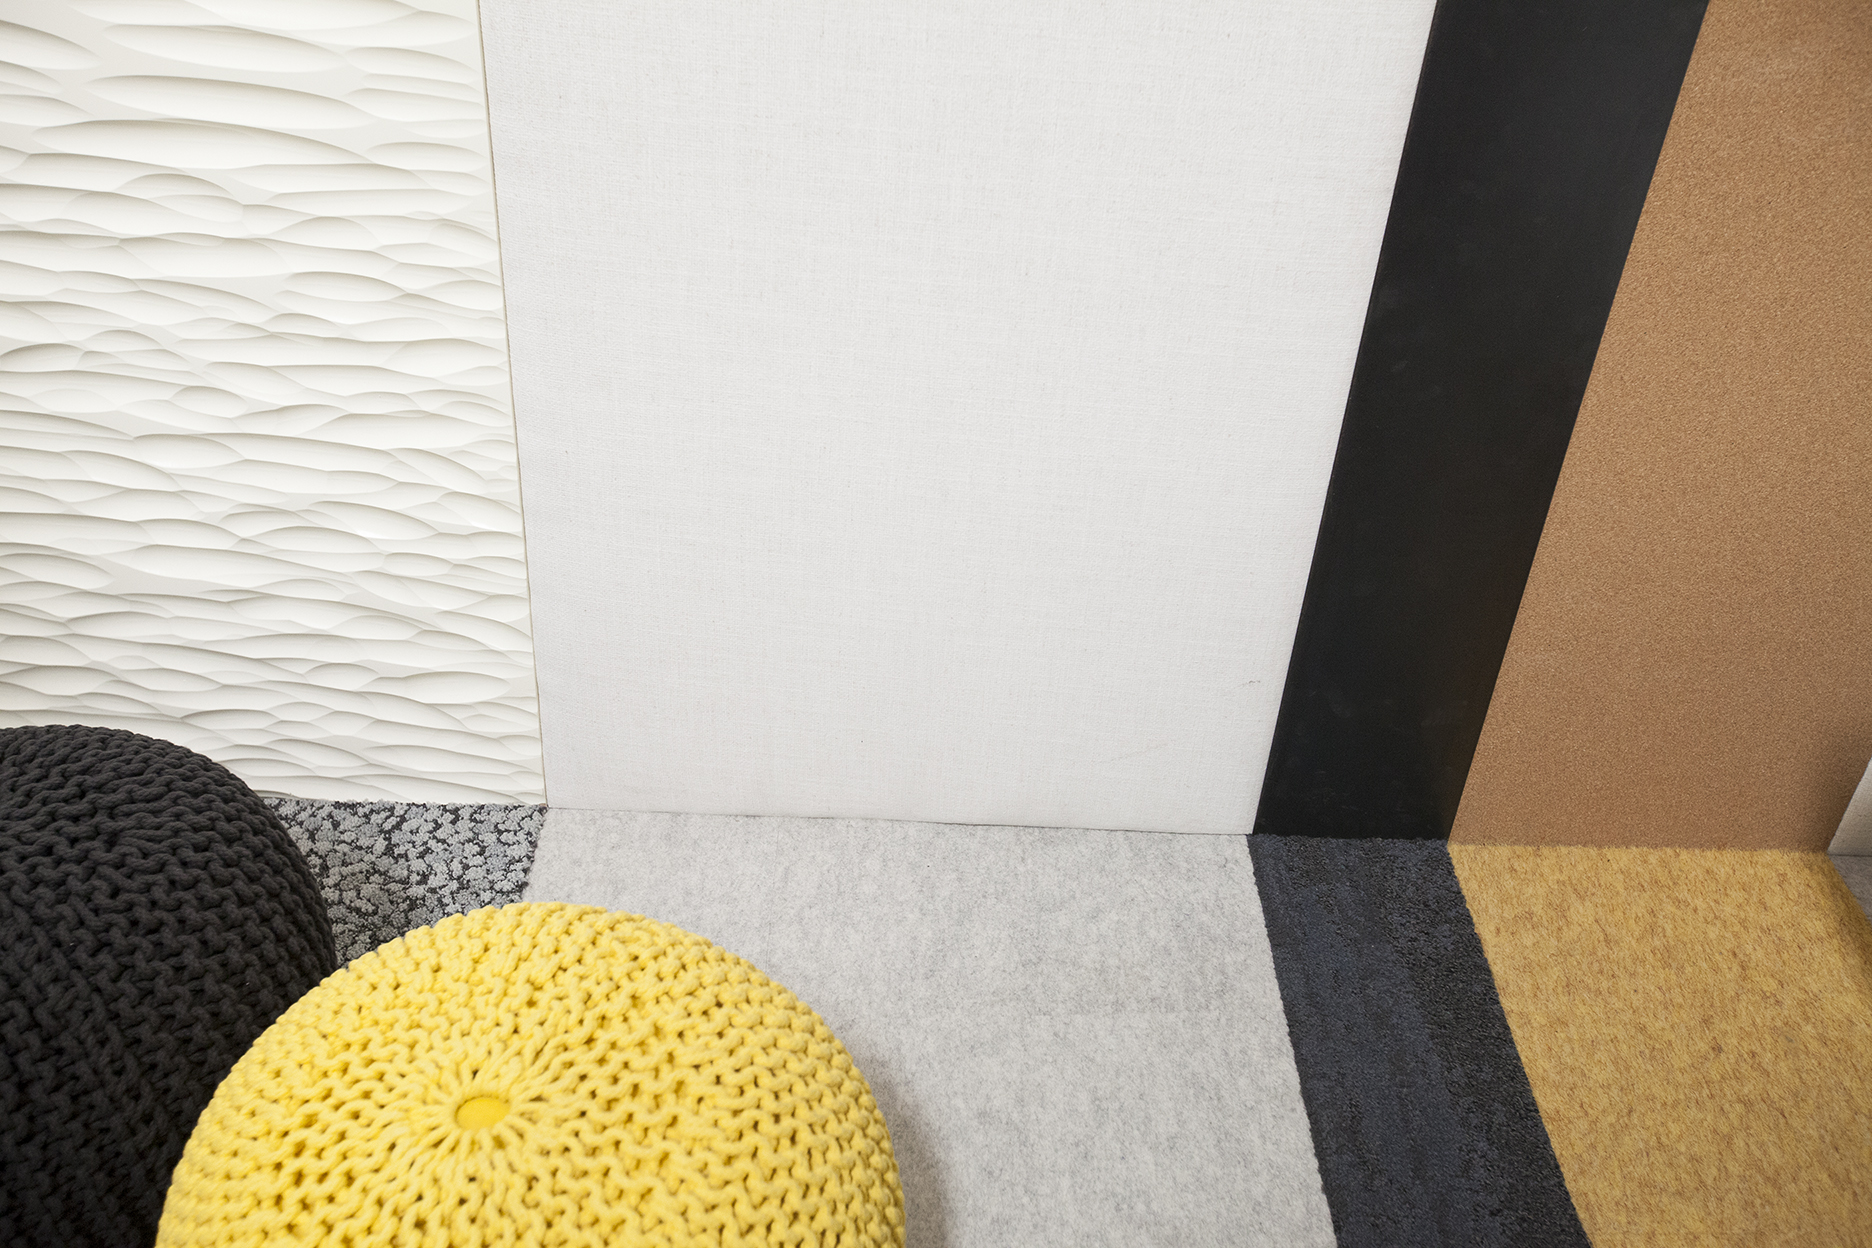 The walls turn into the floor with soft carpeting that matches.